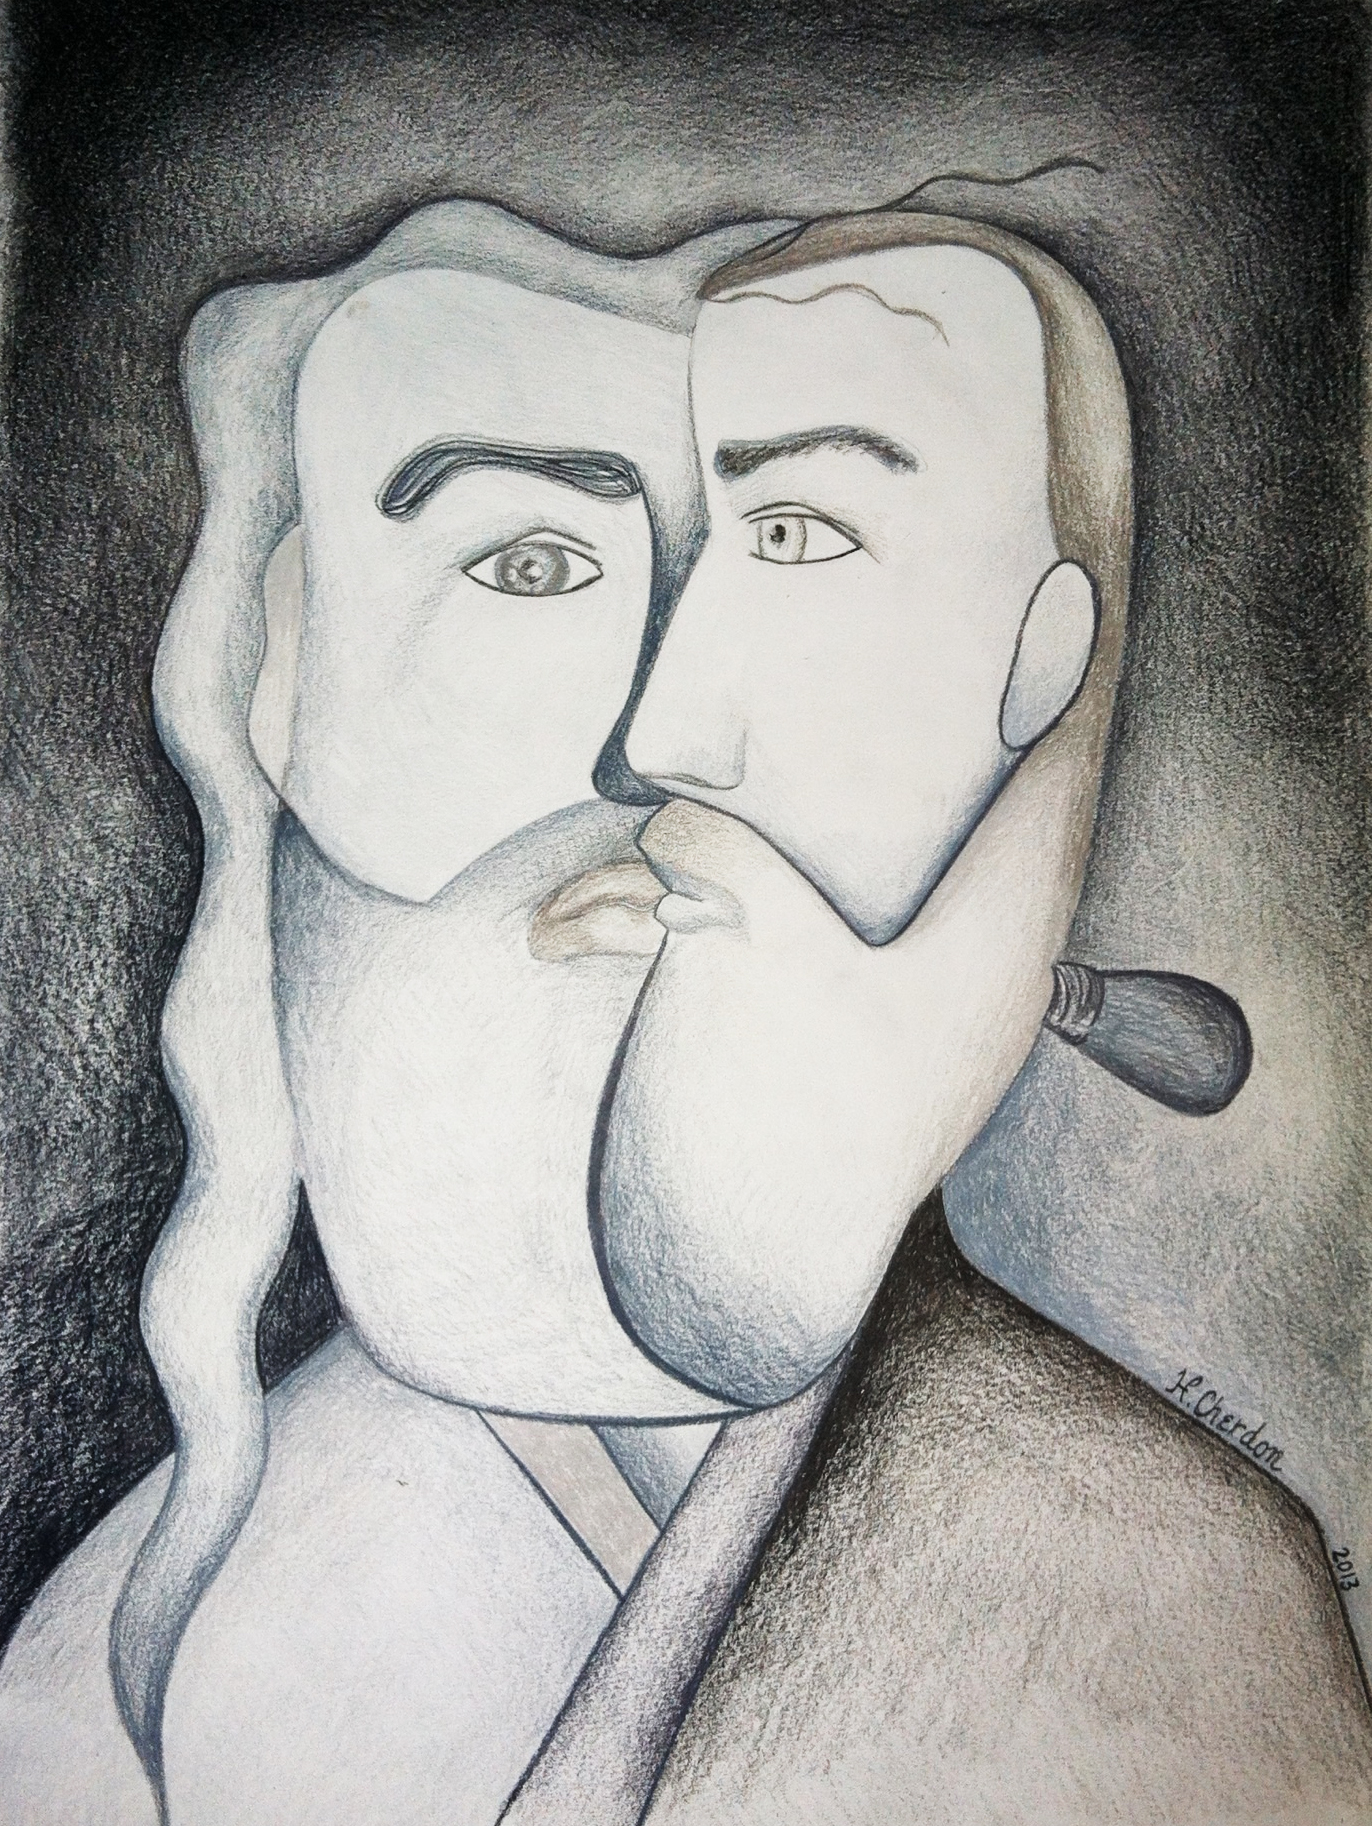 Chercasso: Illustration Inspired by Picasso's Black & White Period